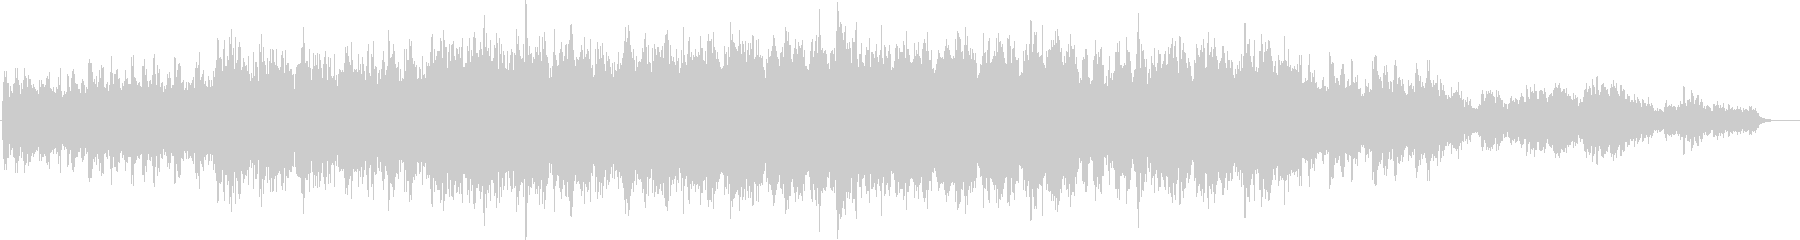 Moist and fantastic melody's unreproduced waveform